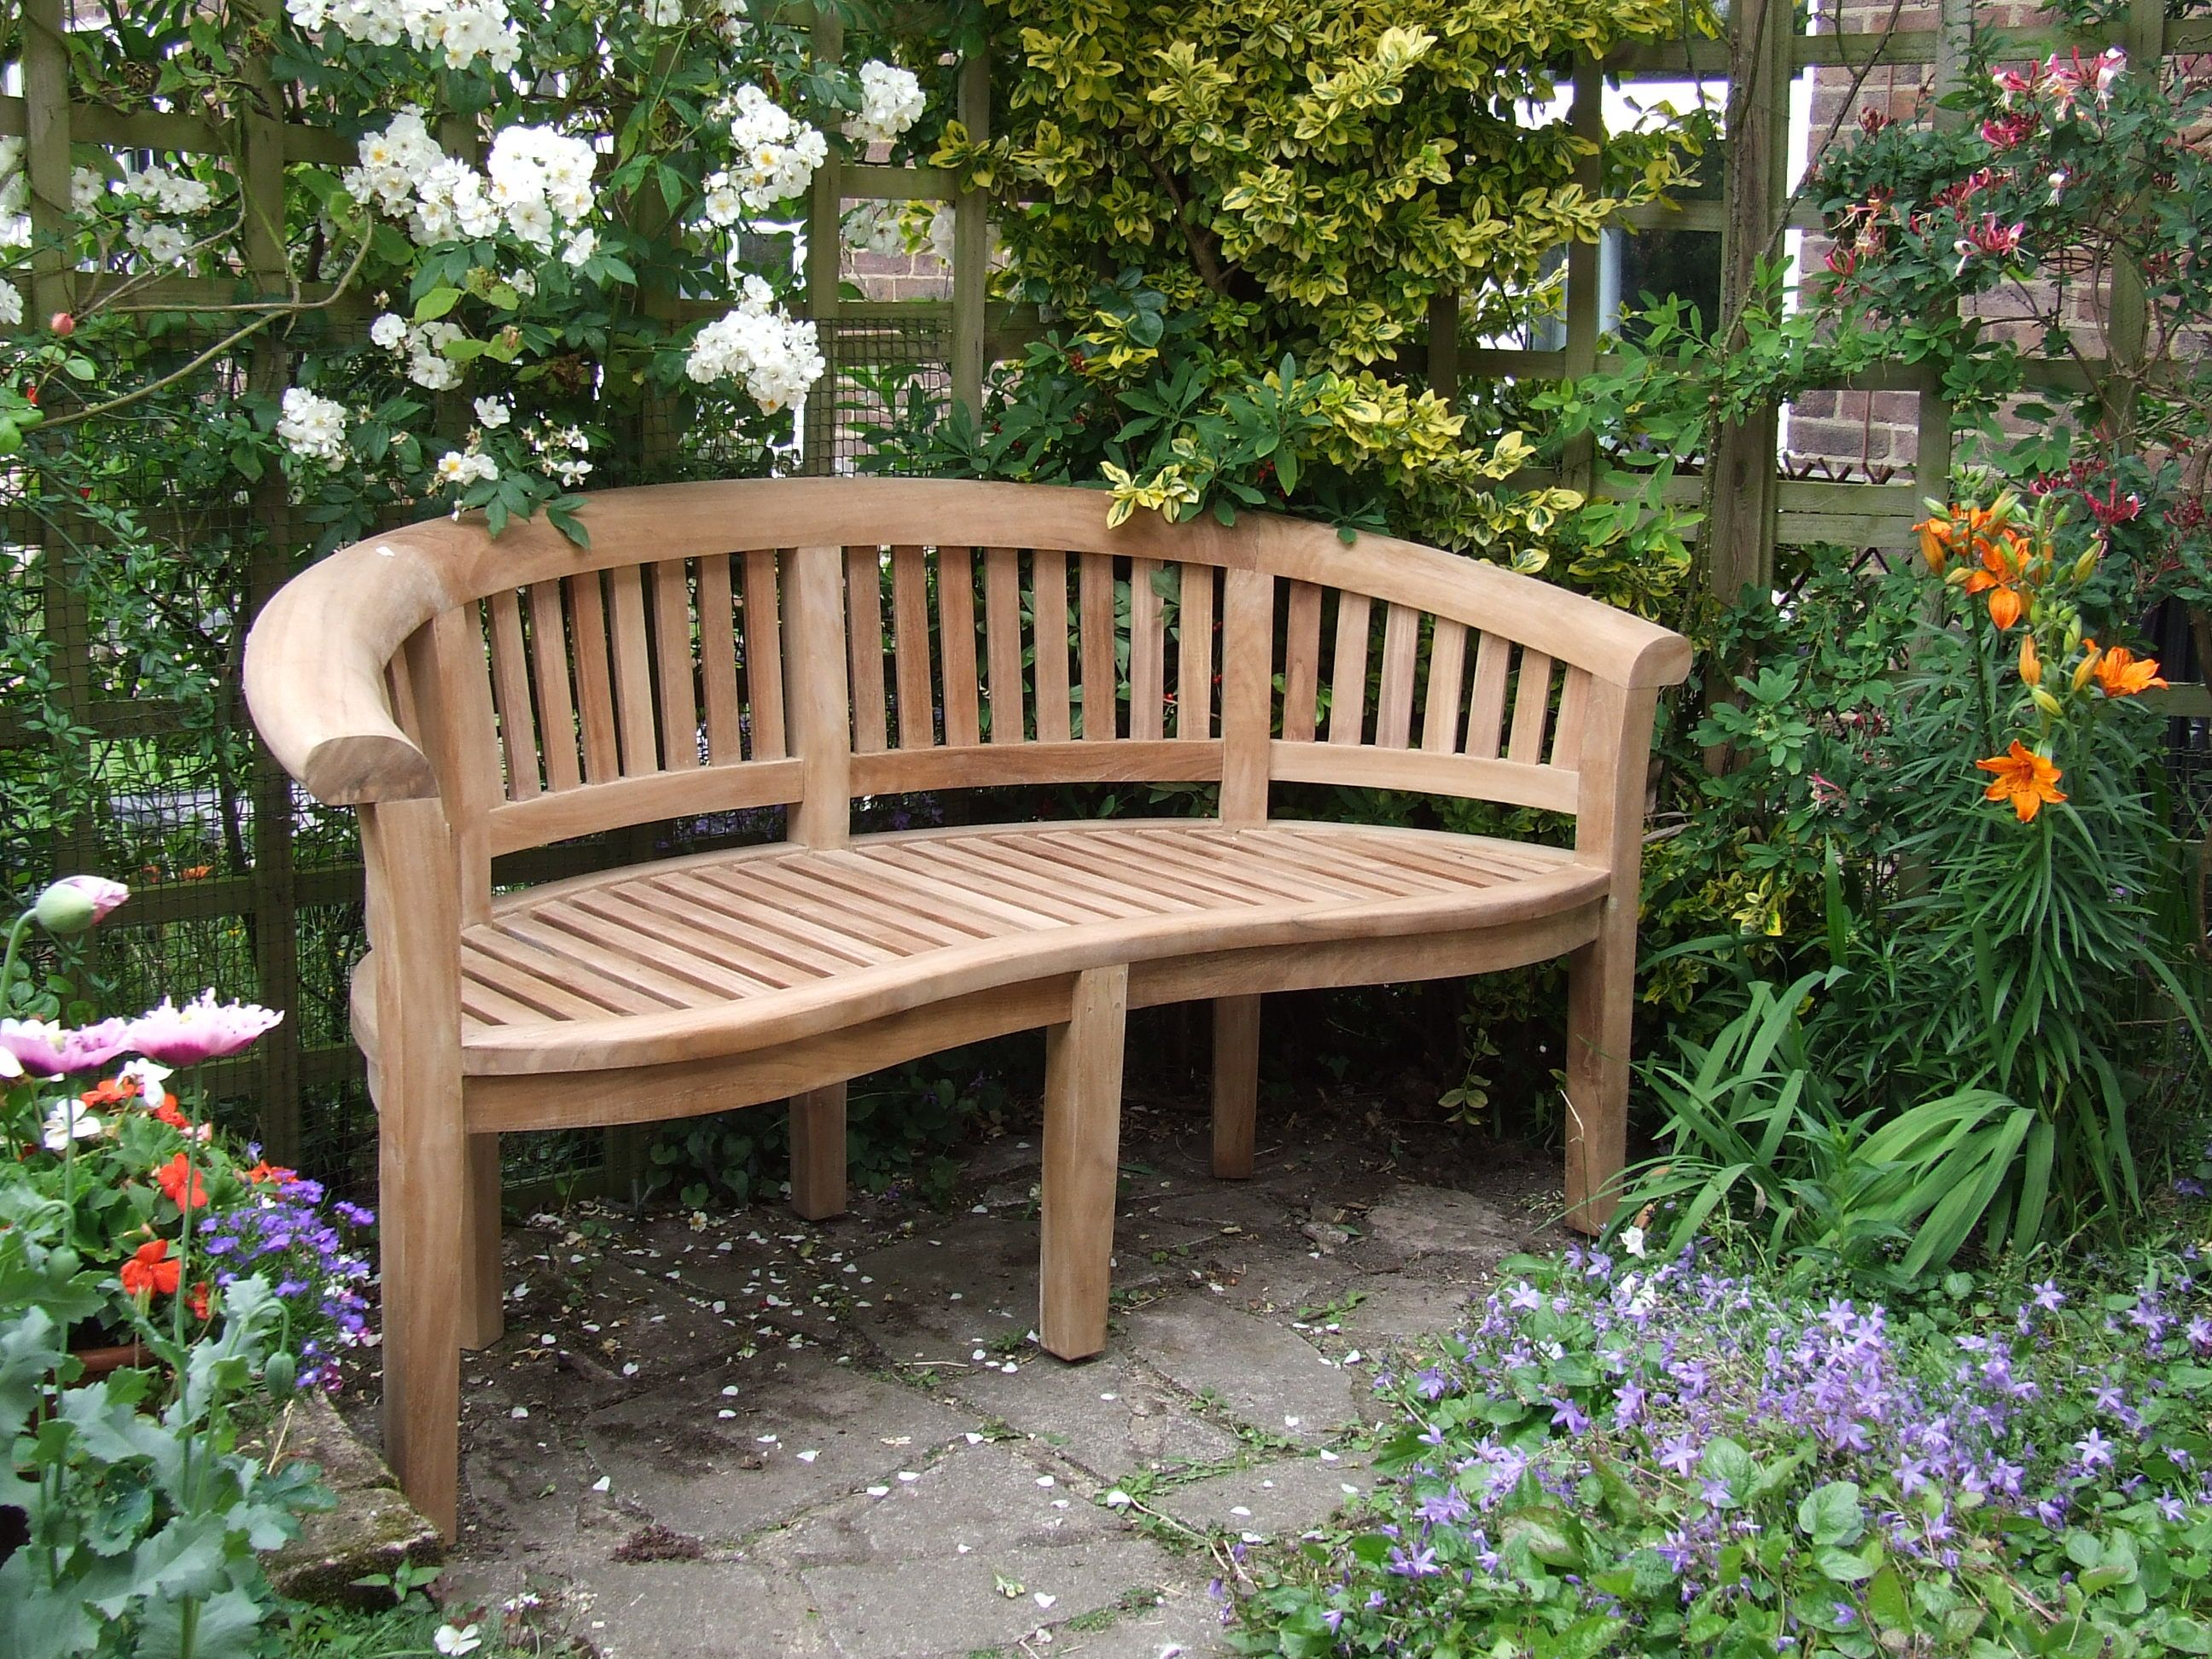 Natural Look Wooden Curved Backseat Garden Bench On Backyard